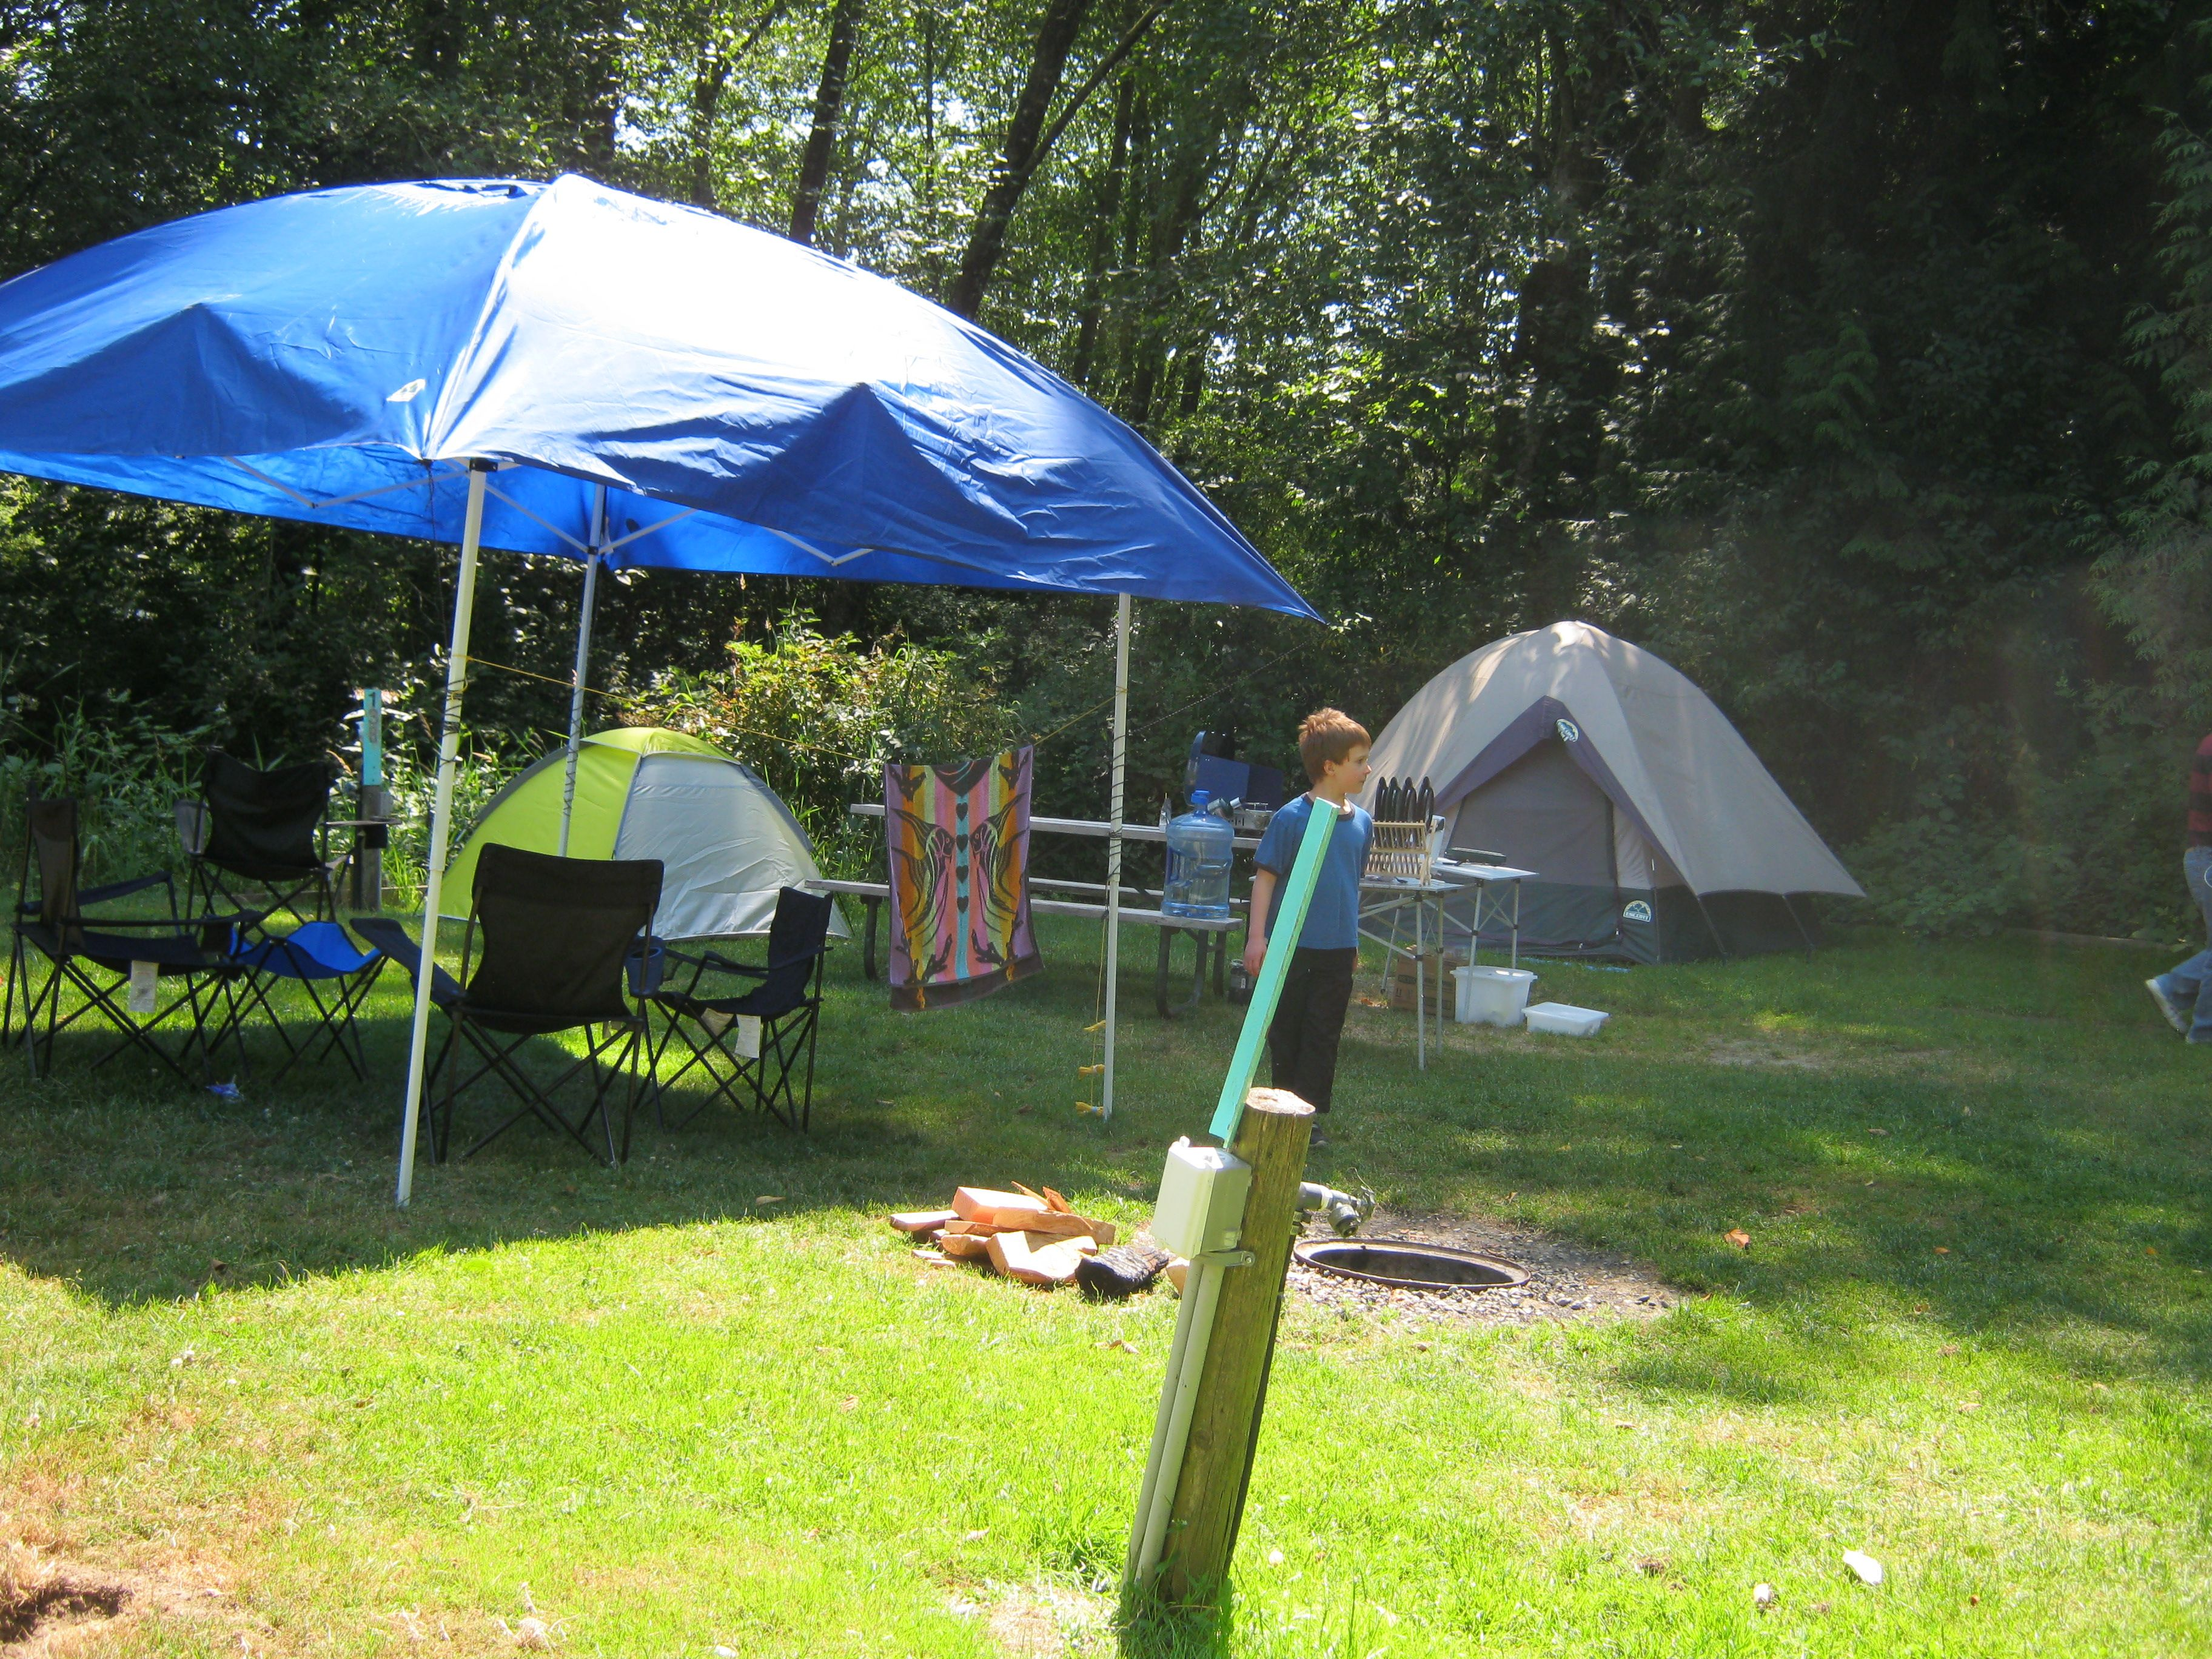 Hazelmere Rv Park And Campground Rv Parks And Campgrounds Rv Parks Campground